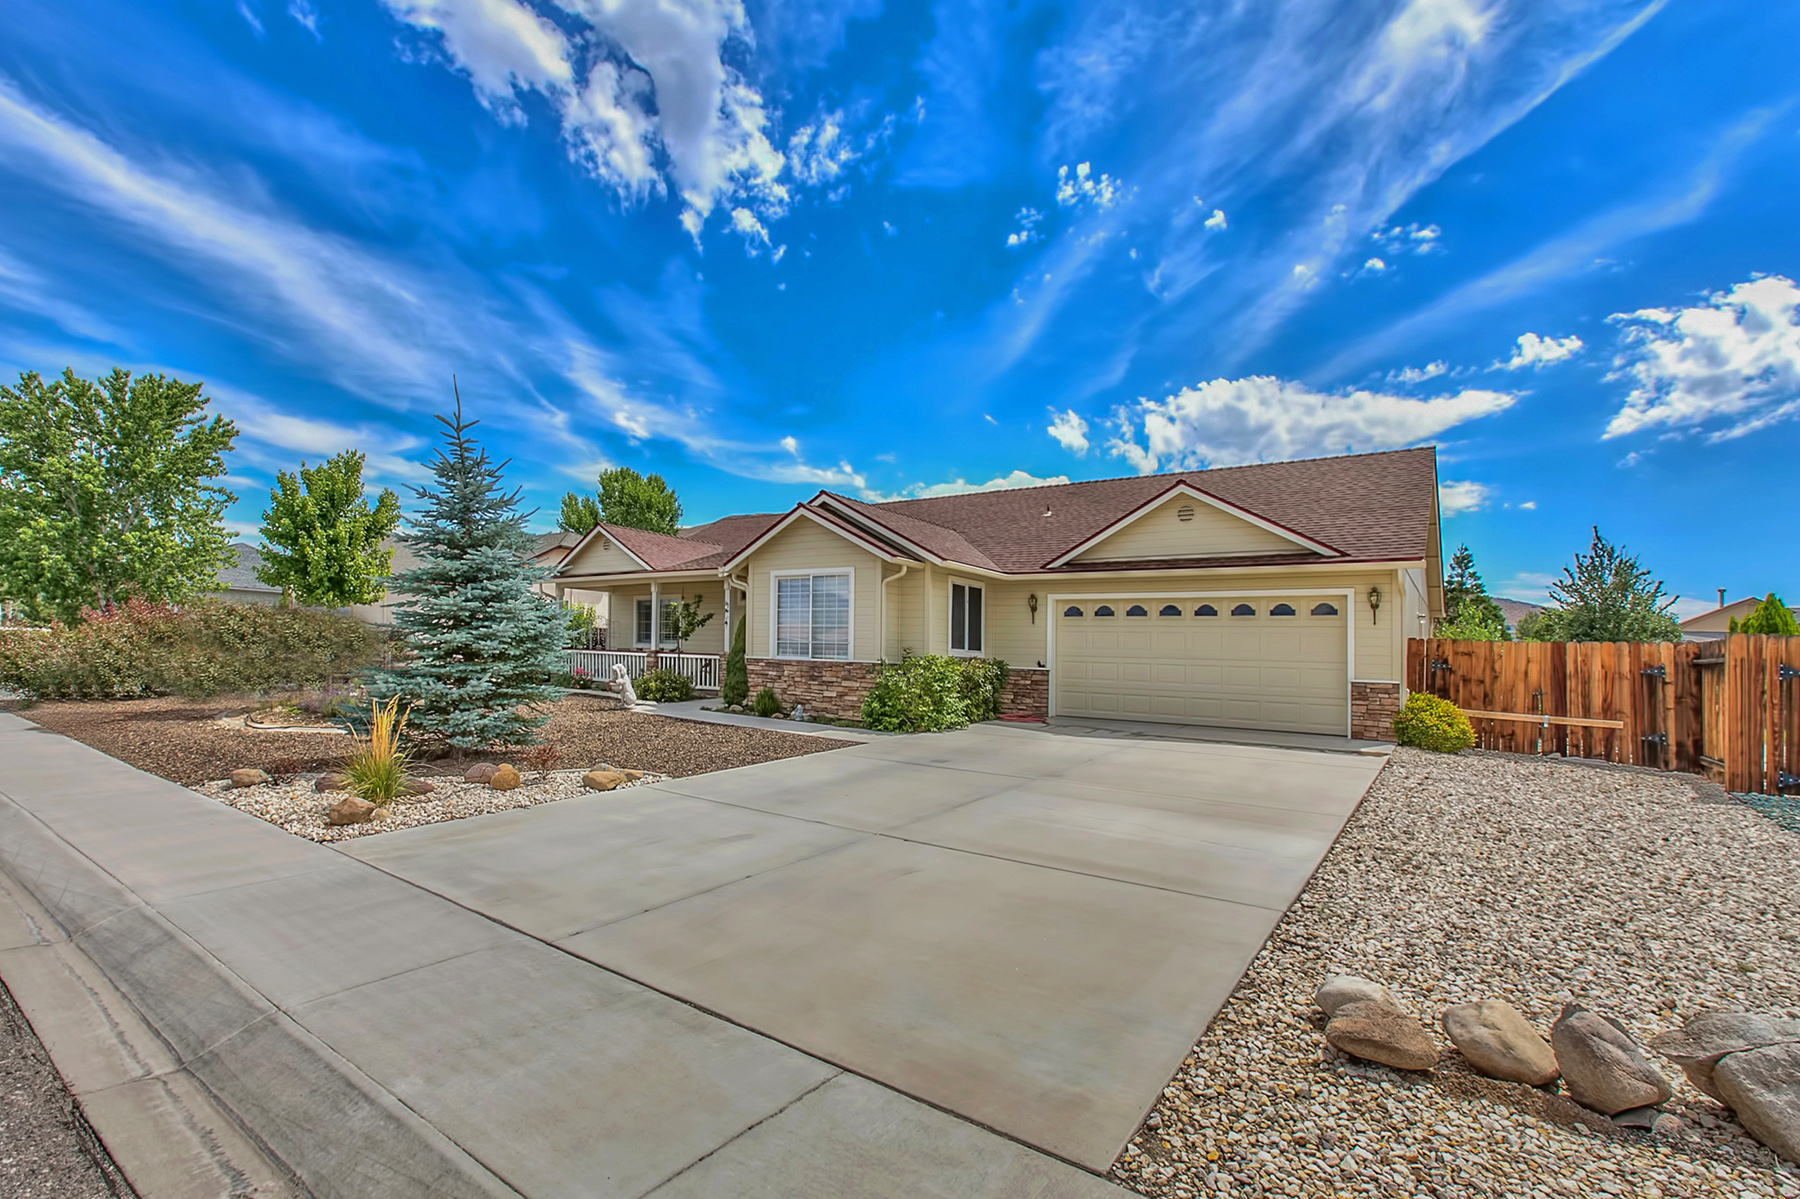 Single Family Home for Sale at 2983 San Mateo Minden, Nevada 89423 United States